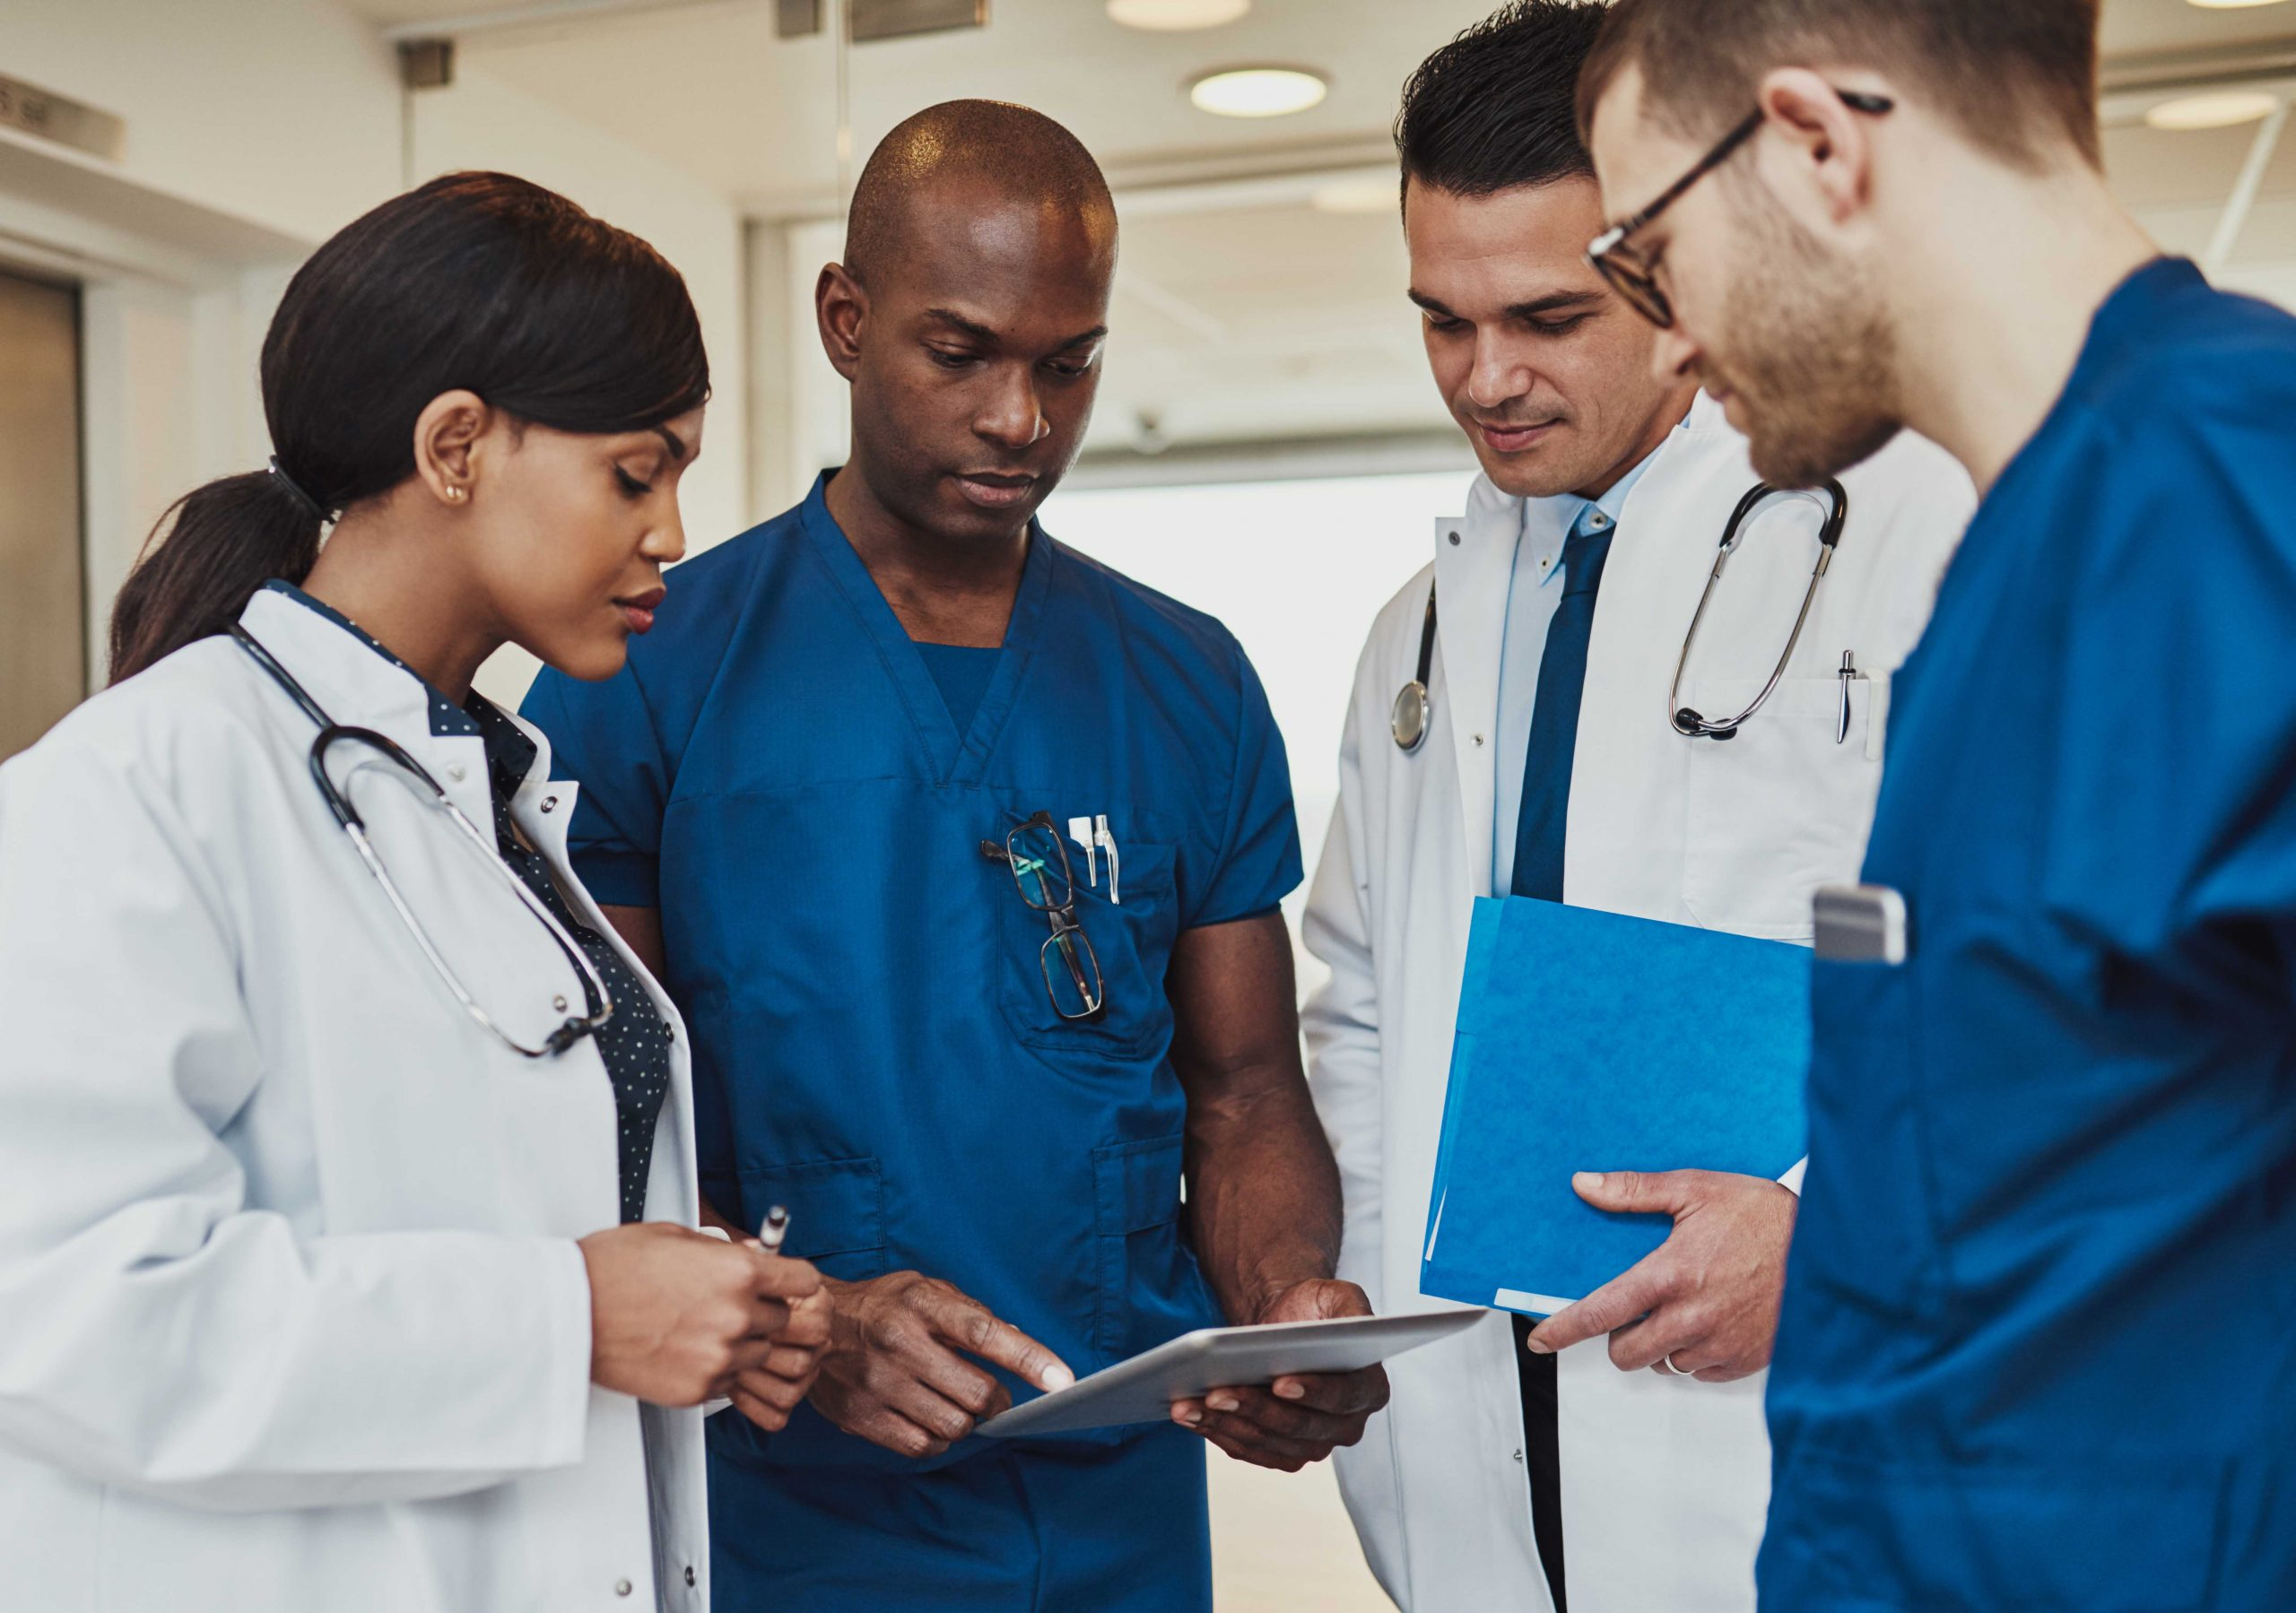 Multiracial team of doctors discussing a patient standing grouped in the foyer looking at a tablet computer, close up view